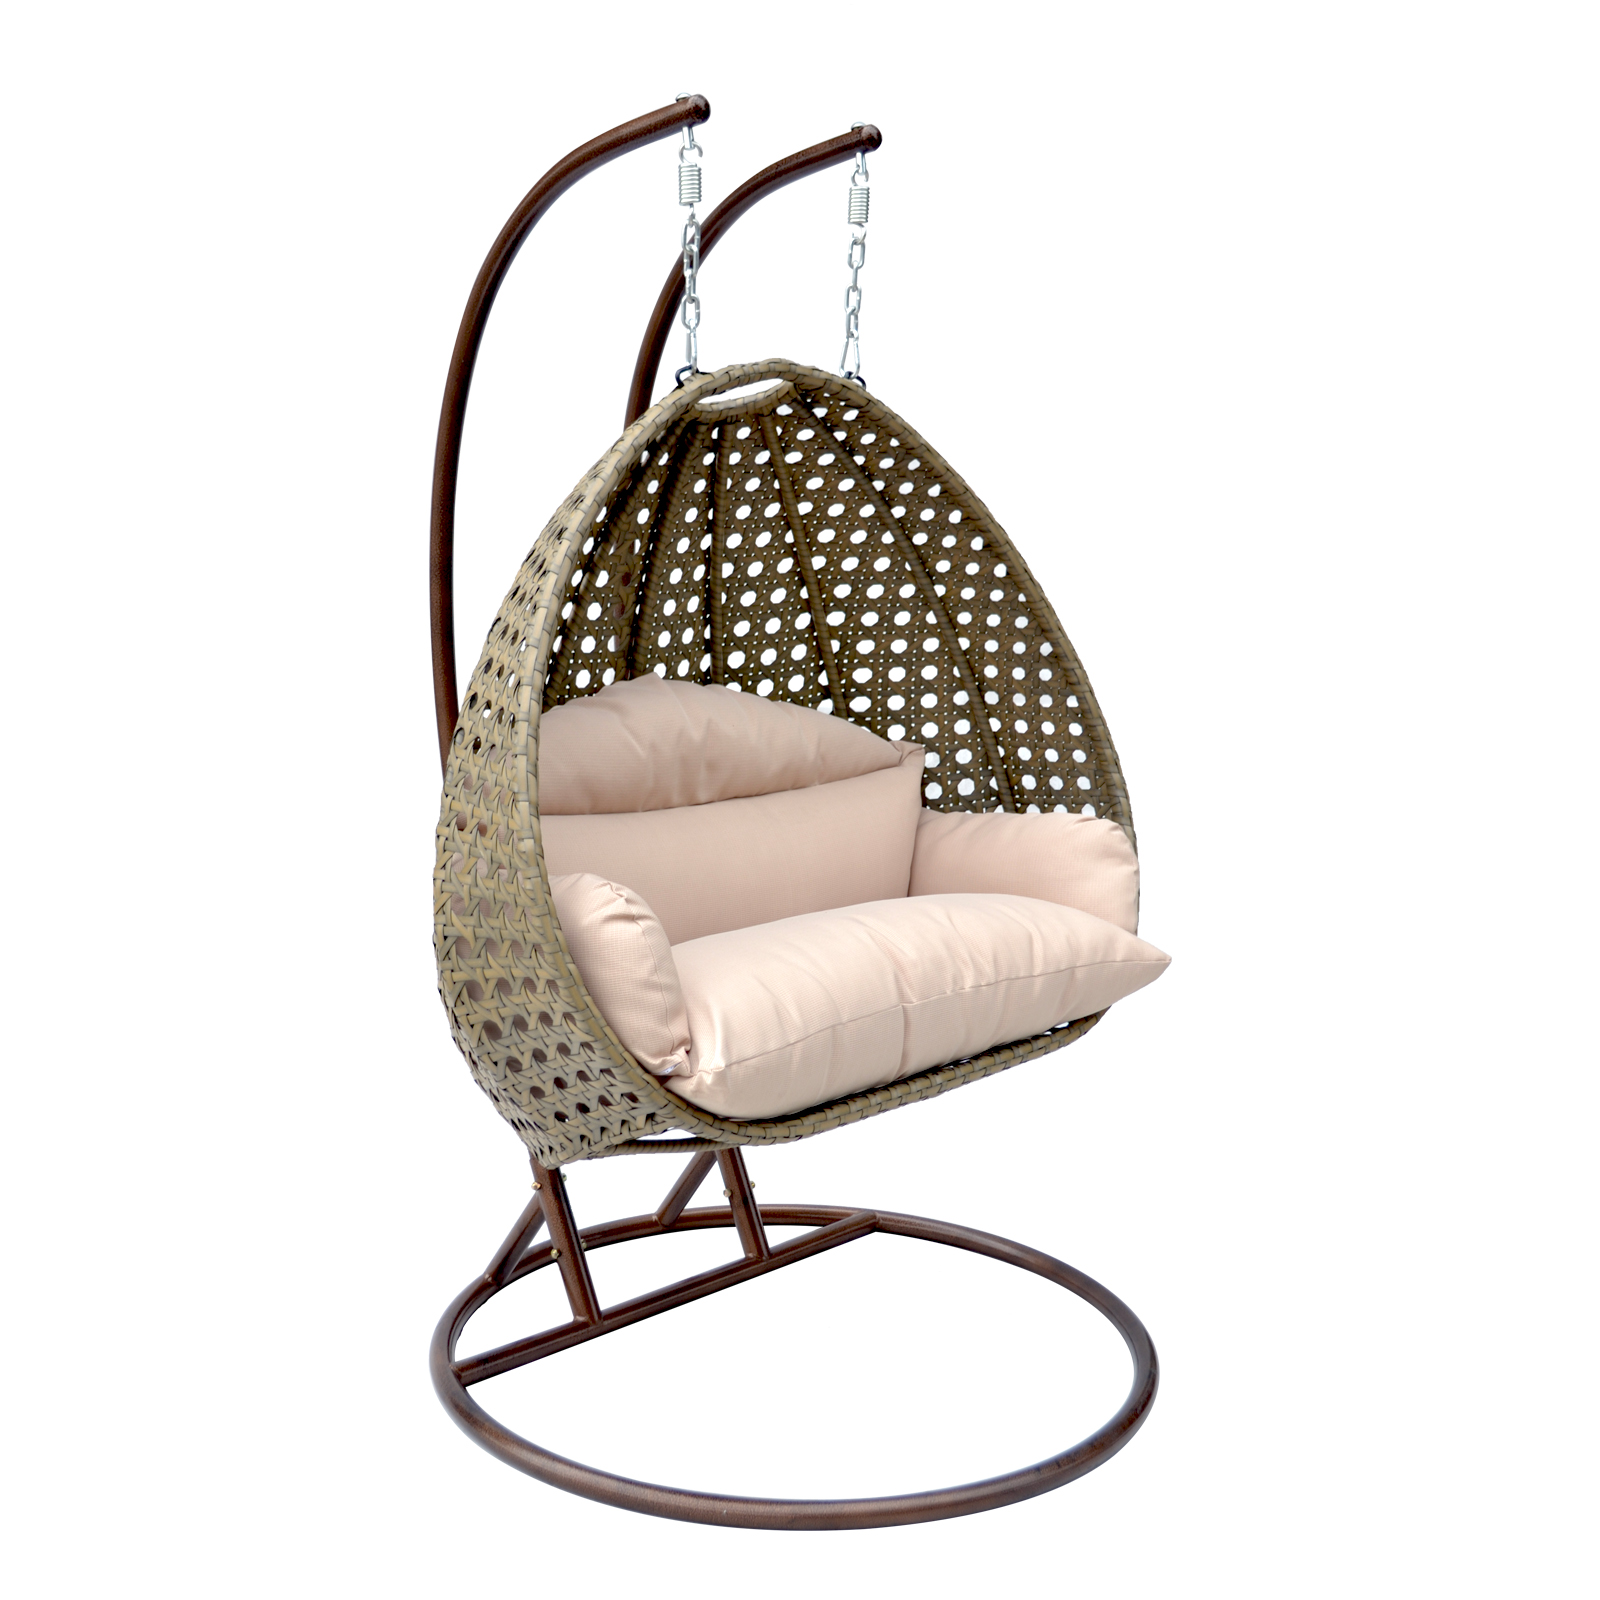 2 Person Wicker Egg Basket Swing Chair Patio Outdoor Furniture Hanging Hammock